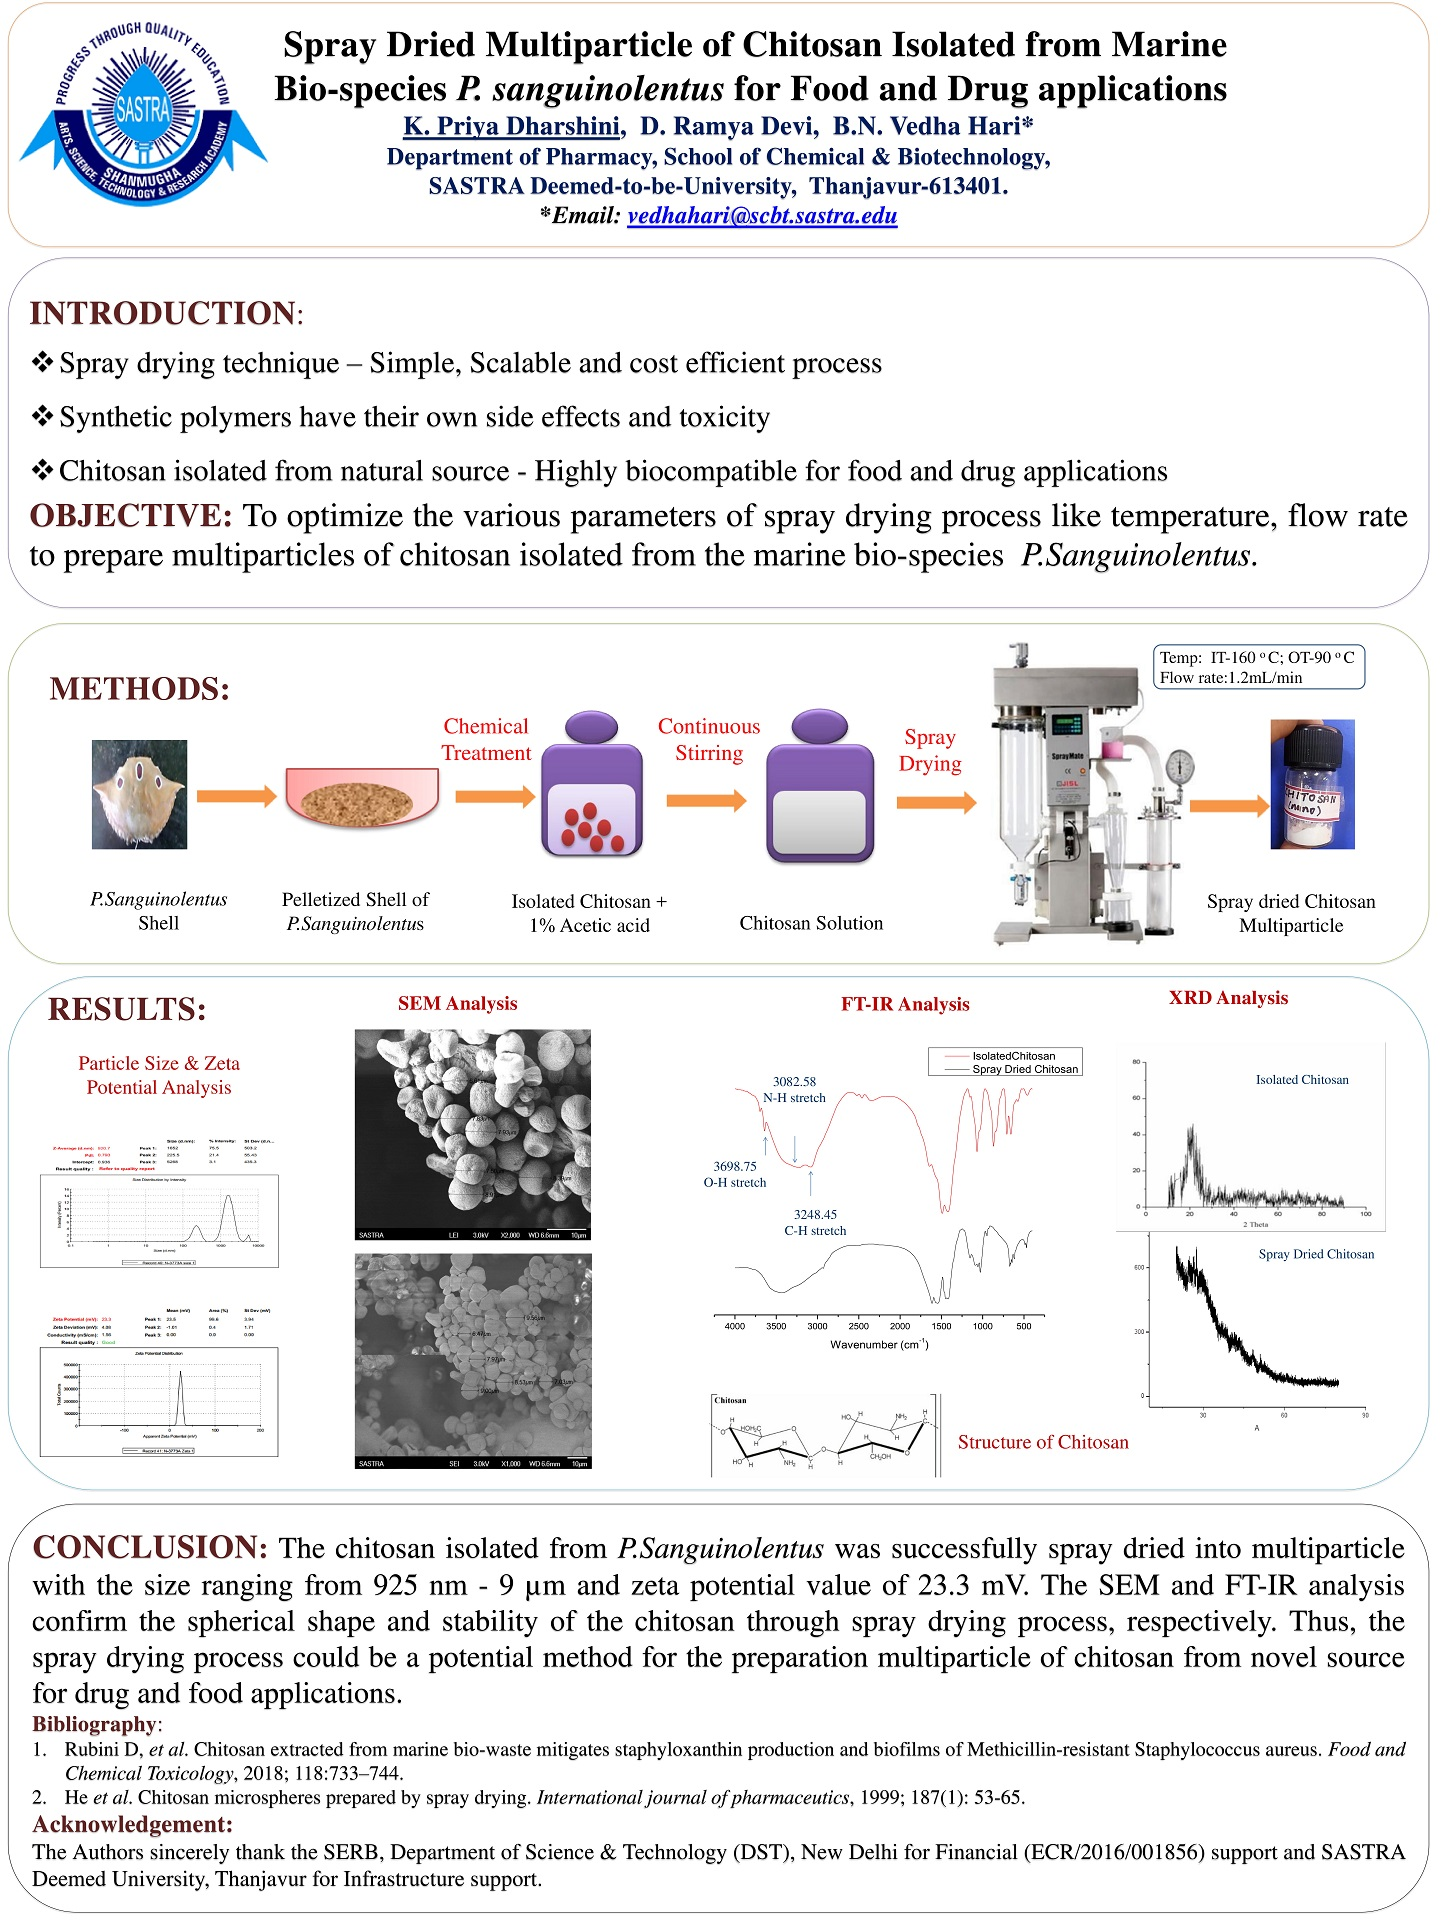 Spray Dried Multiparticles of Chitosan Isolated from Marine Bio